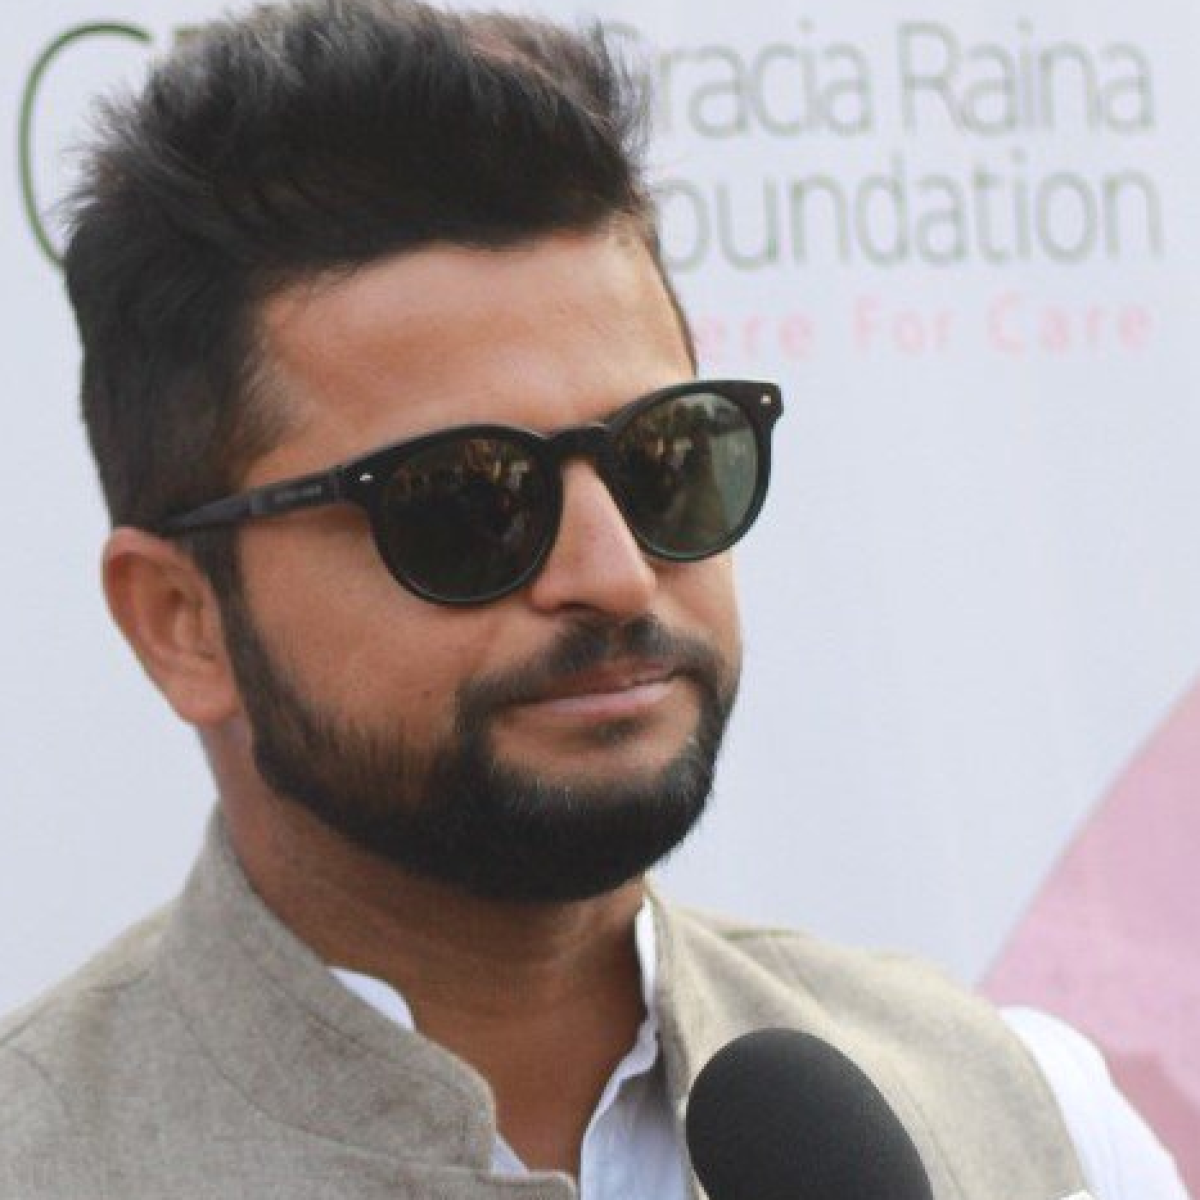 'Wasn't aware of protocols': Suresh Raina on being booked for violating COVID-19 norms in Mumbai